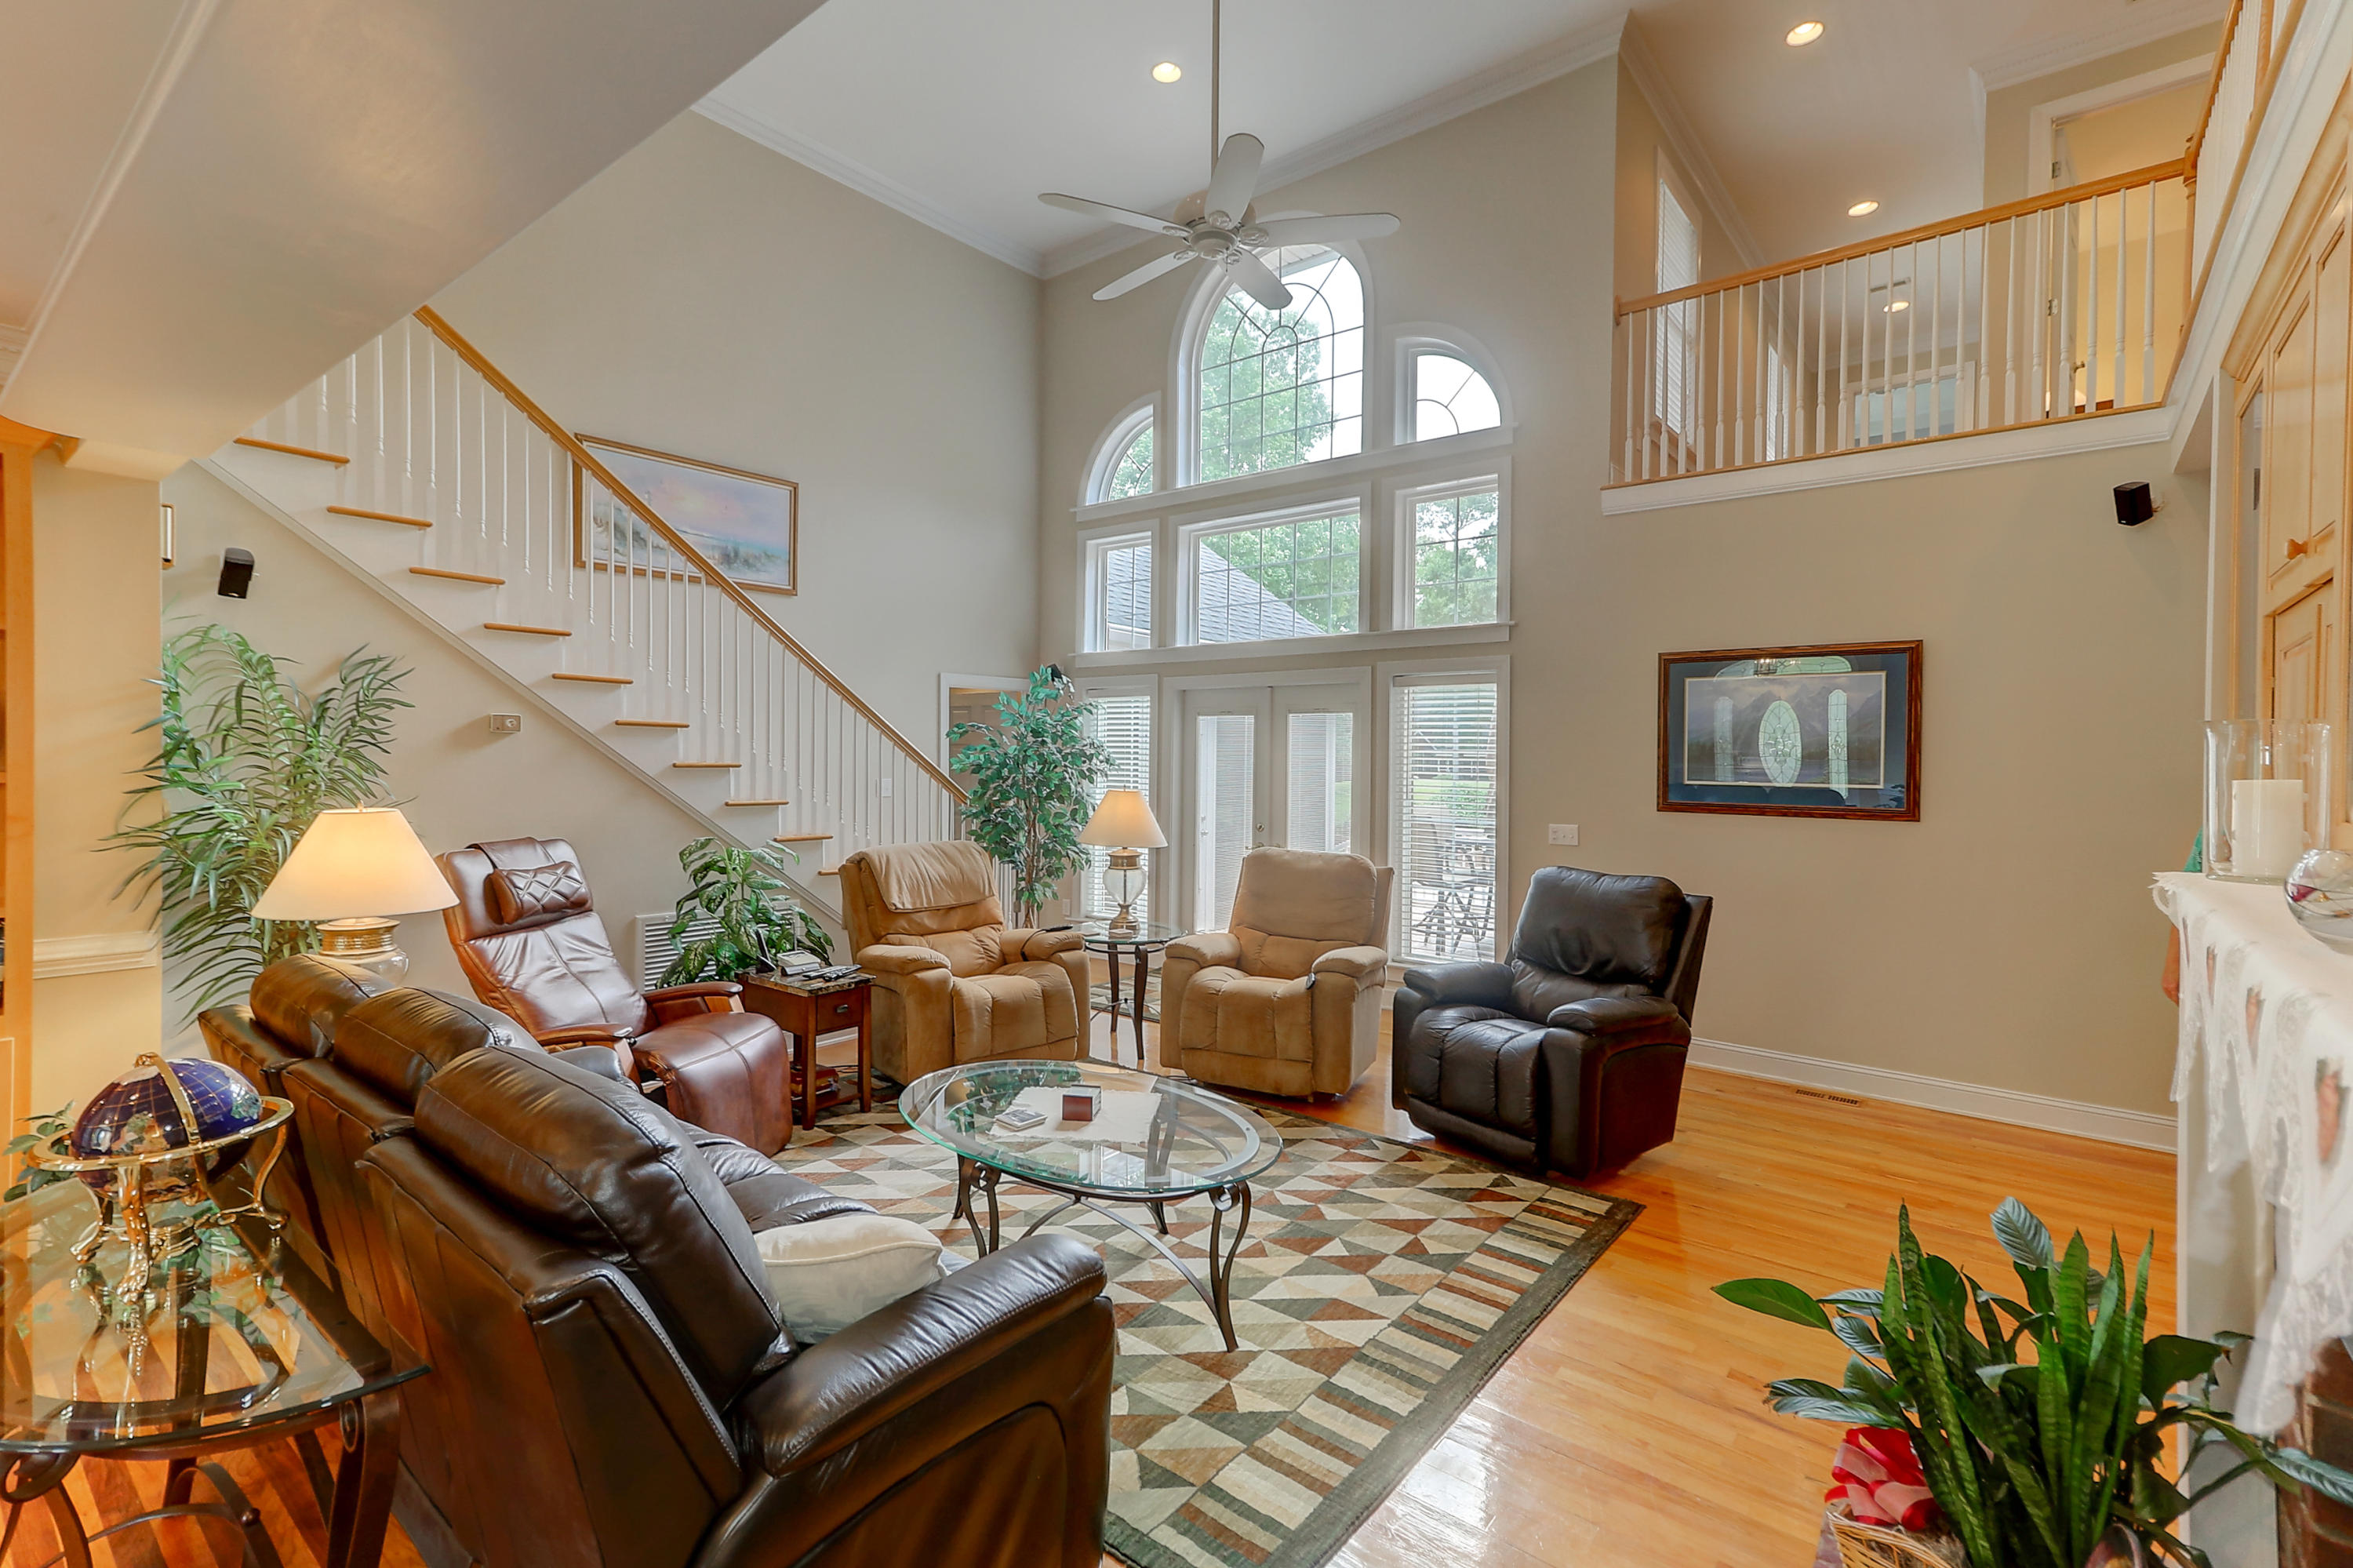 Coosaw Creek Country Club Homes For Sale - 8700 Fairway Woods, North Charleston, SC - 73